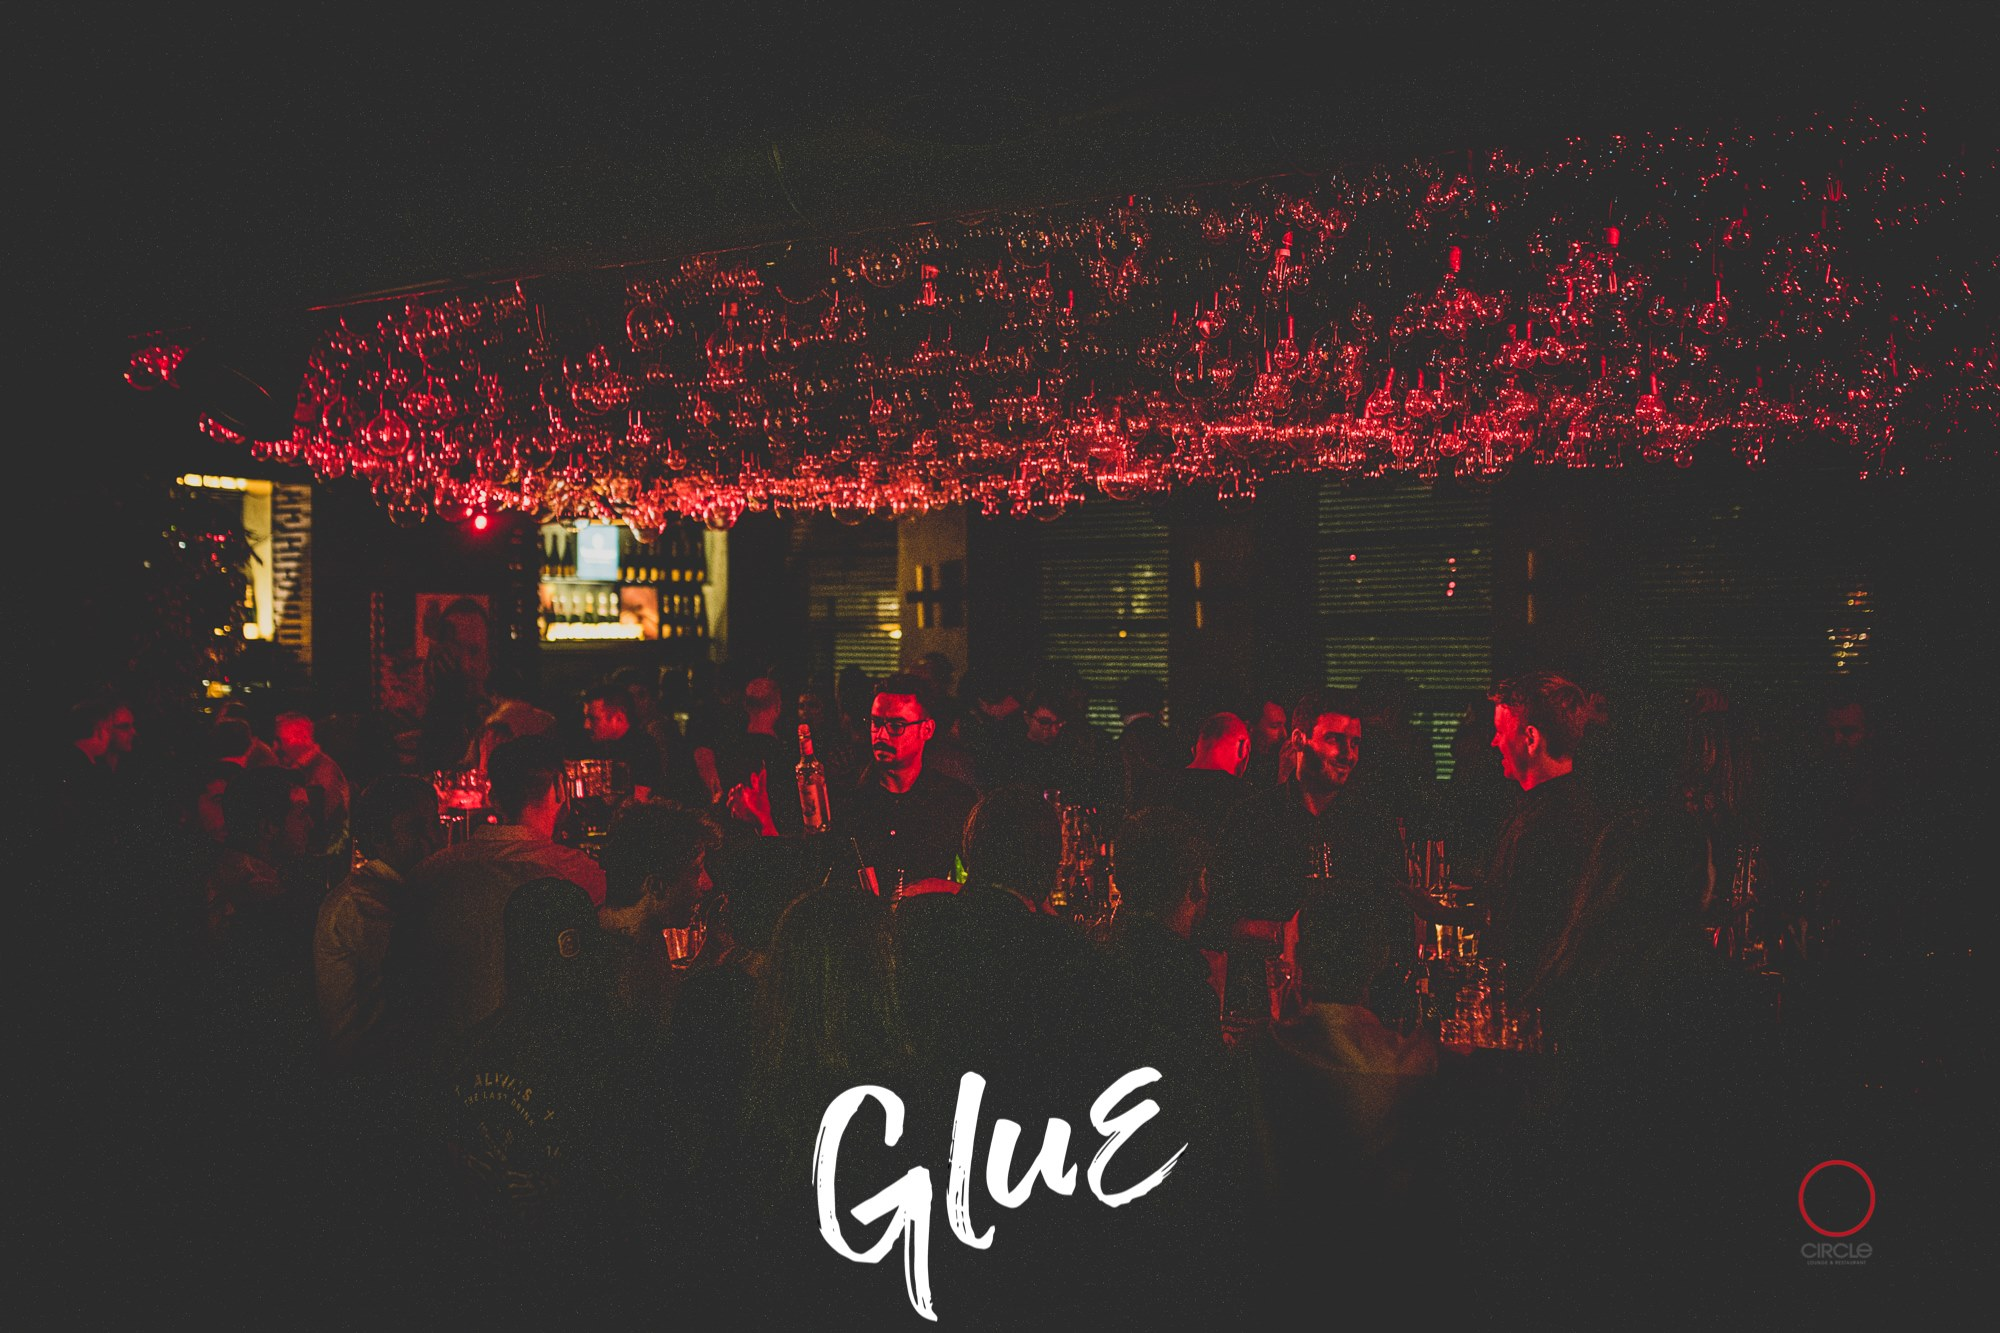 Glue / House Culture Alex De Ponti | YOUparti circle friday free house music